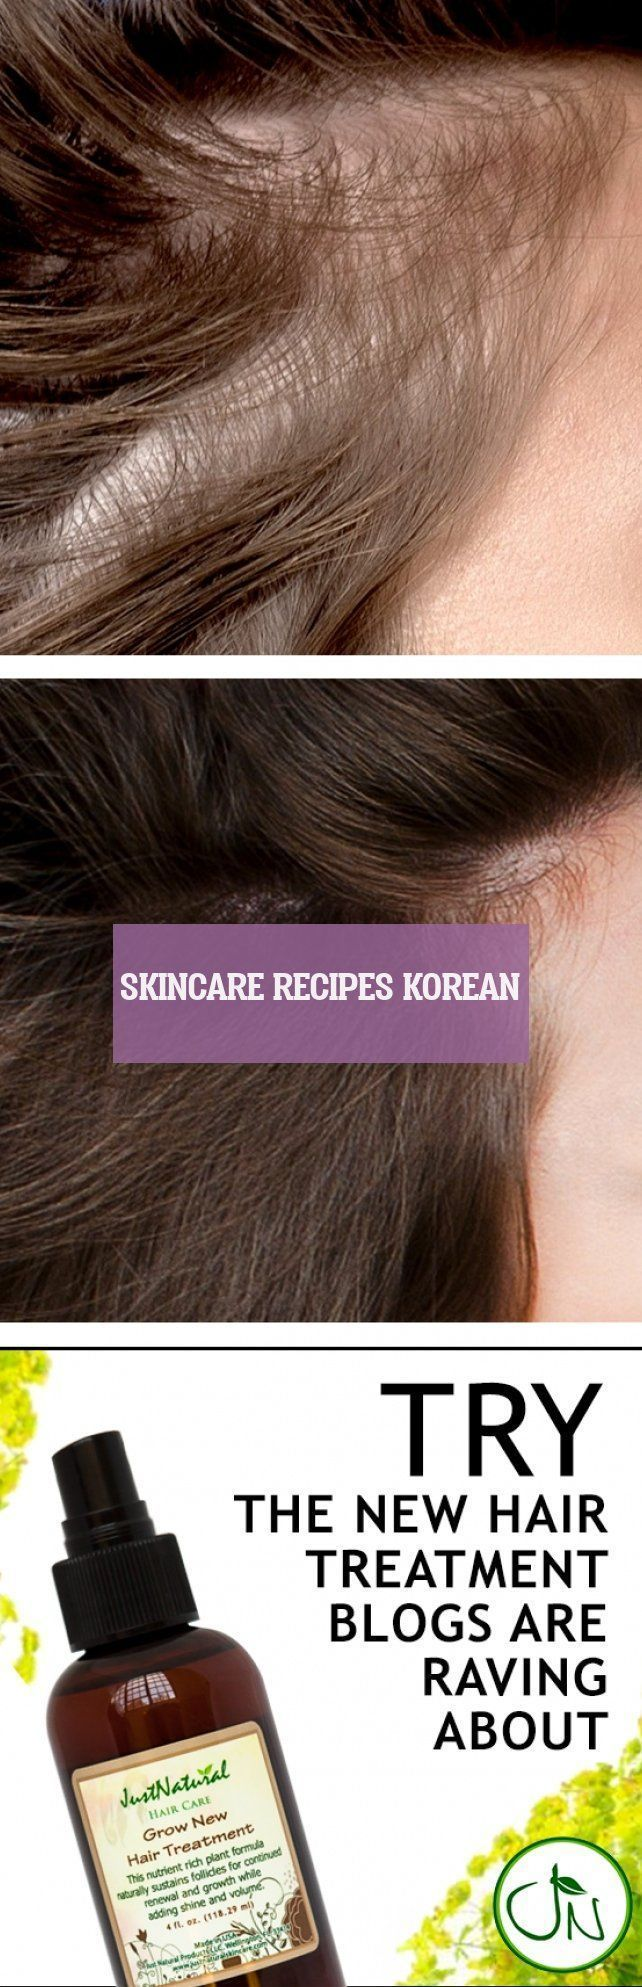 skincare recipes Korean! skincare recipes korean - #skin carerecipes #co ...  -  Hautpflege-Rezepte